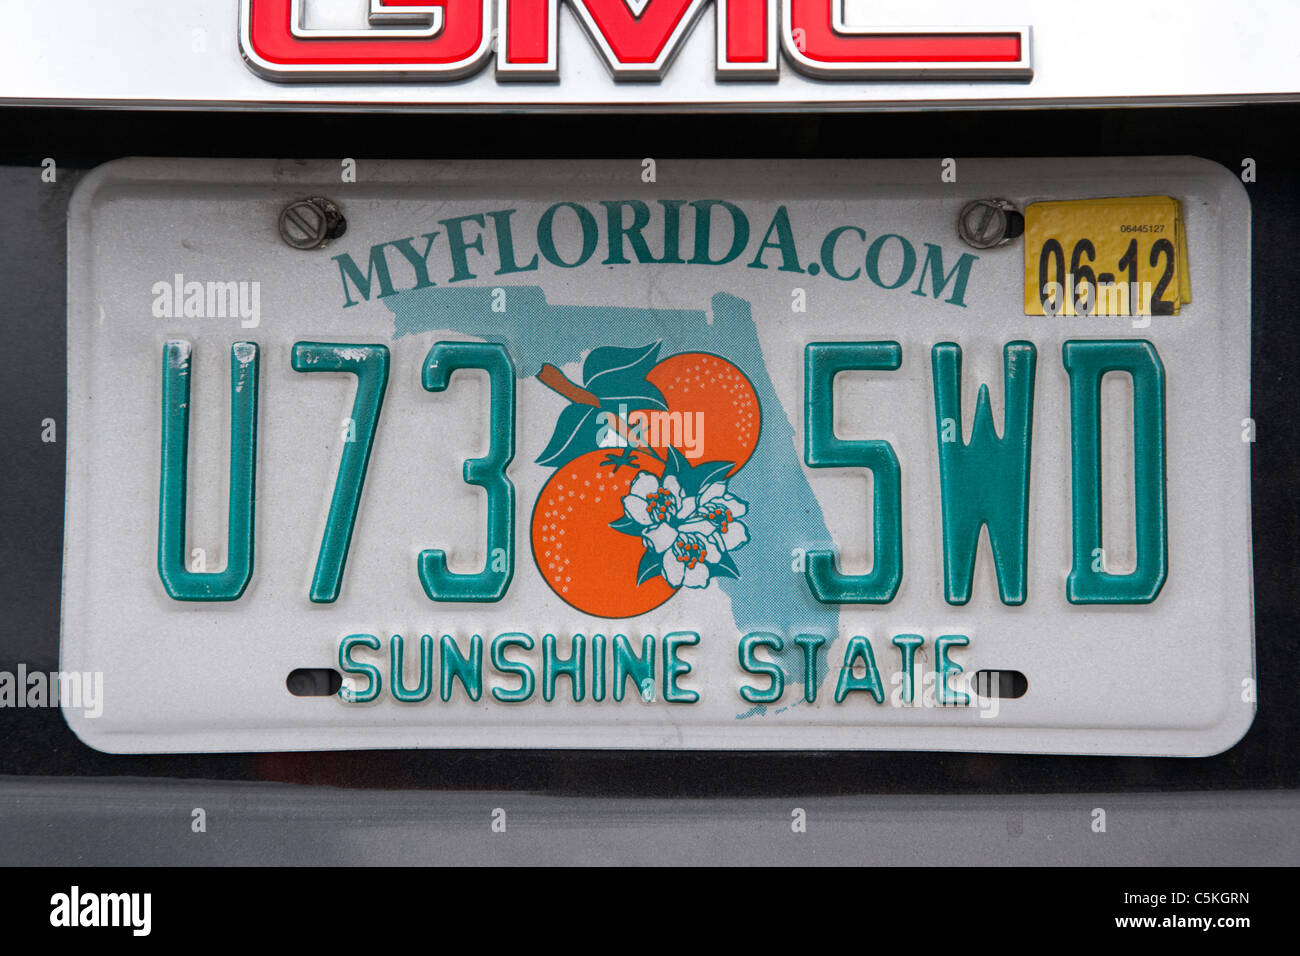 Florida Sunshine State Issued In Miami Dade County Vehicle License